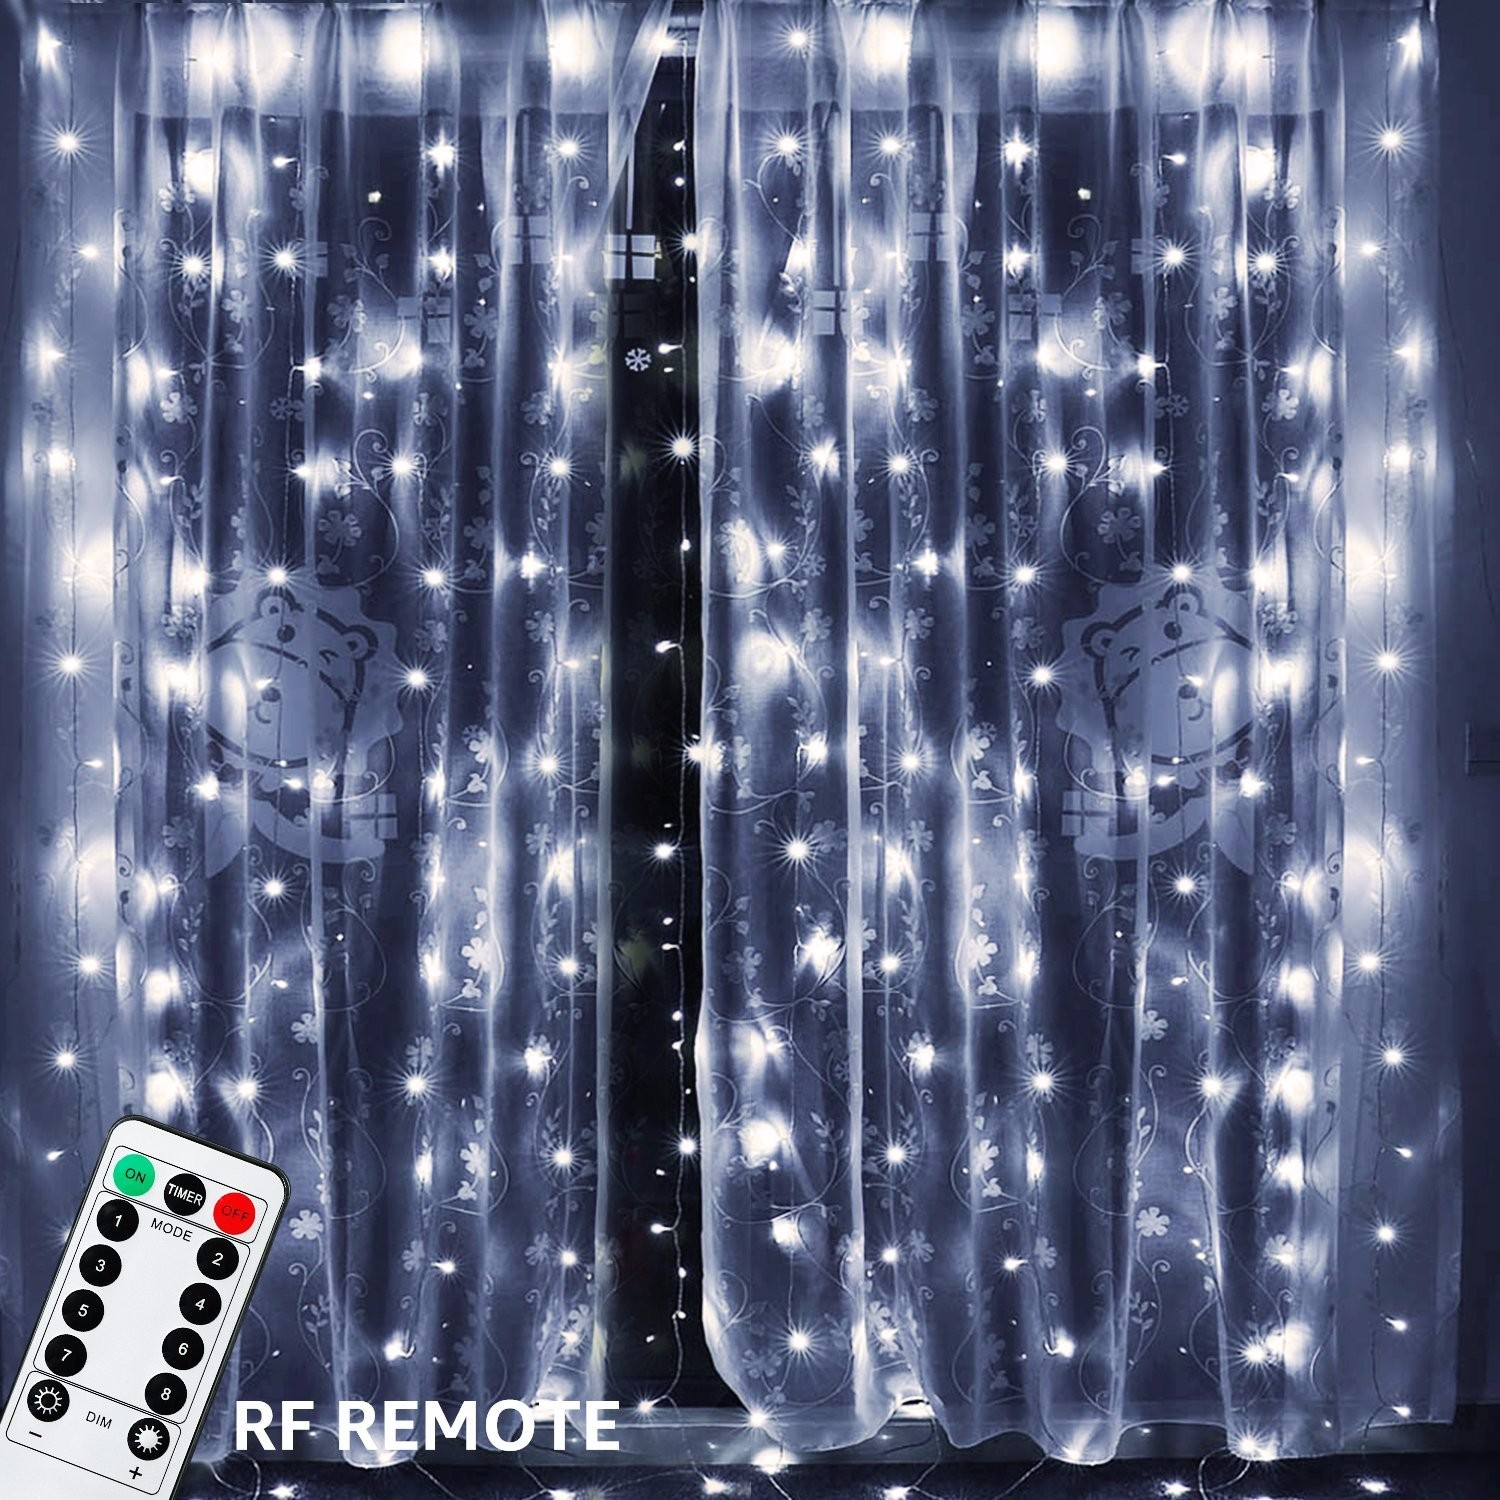 TORCHSTAR 9.8ft x 9.8ft LED Curtain Lights, Starry Christmas String Light, Indoor Decoration for Festival... by TORCHSTAR